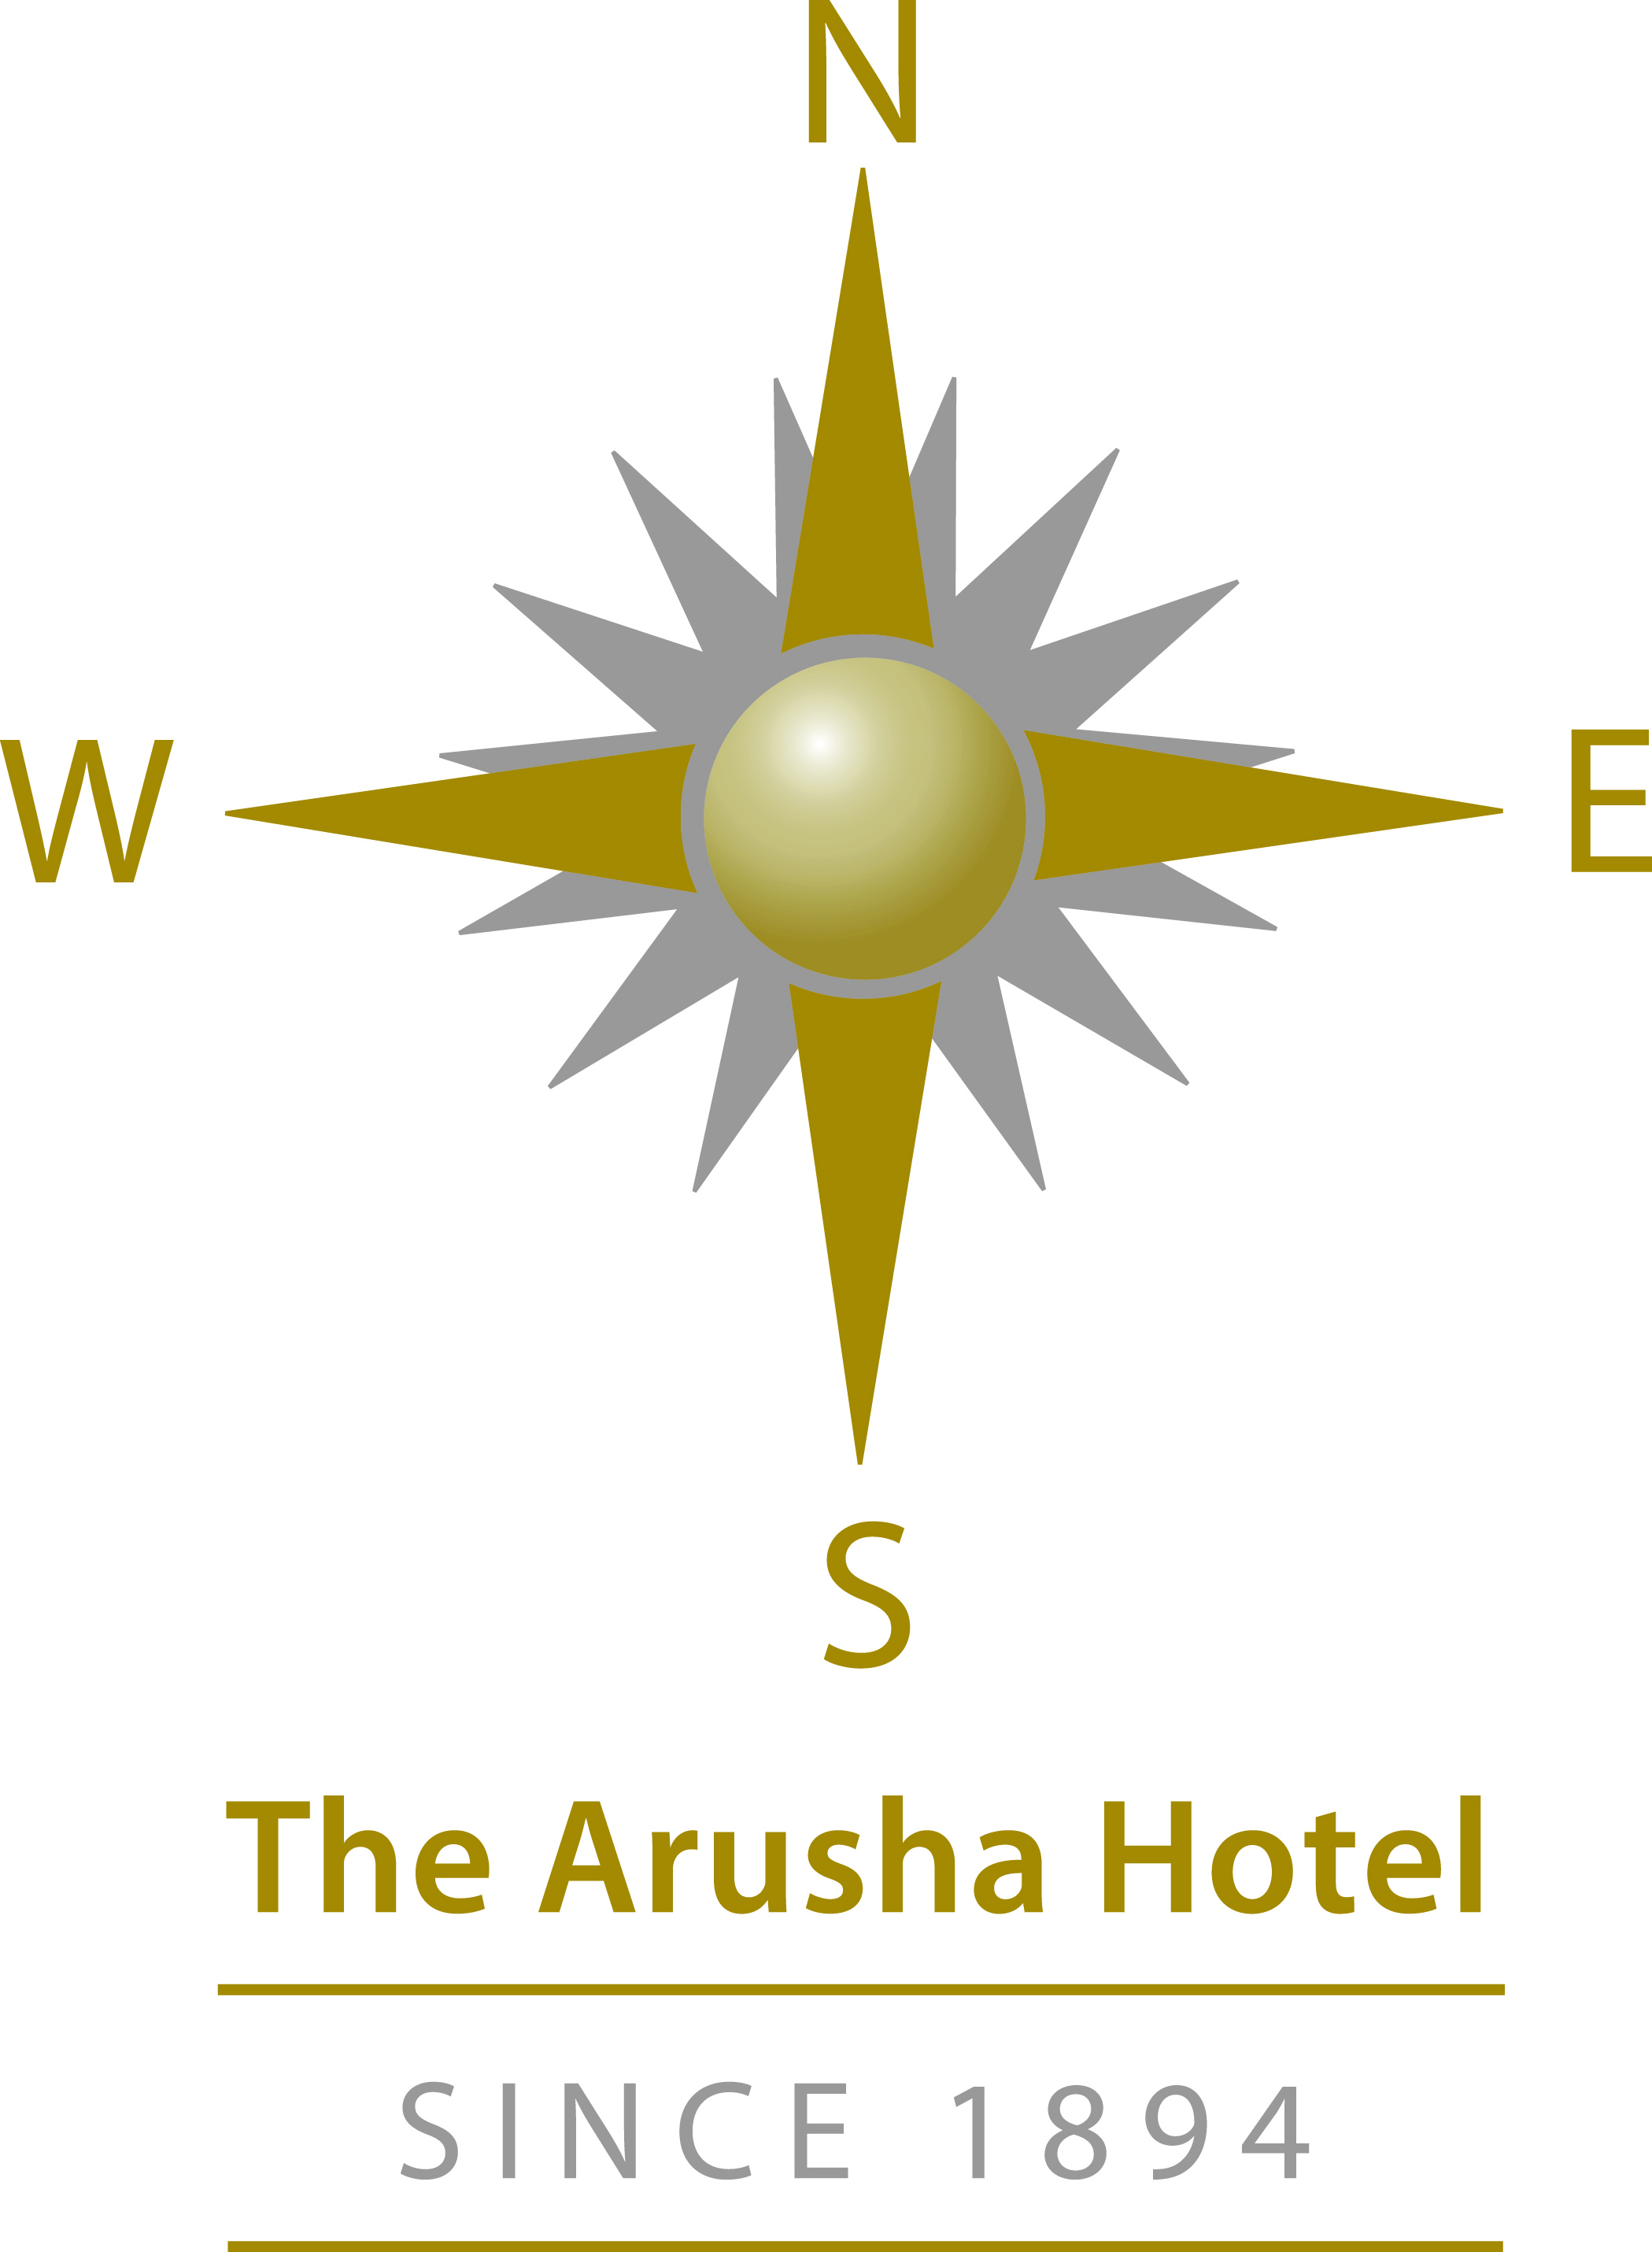 The New Arusha Hotel Logo